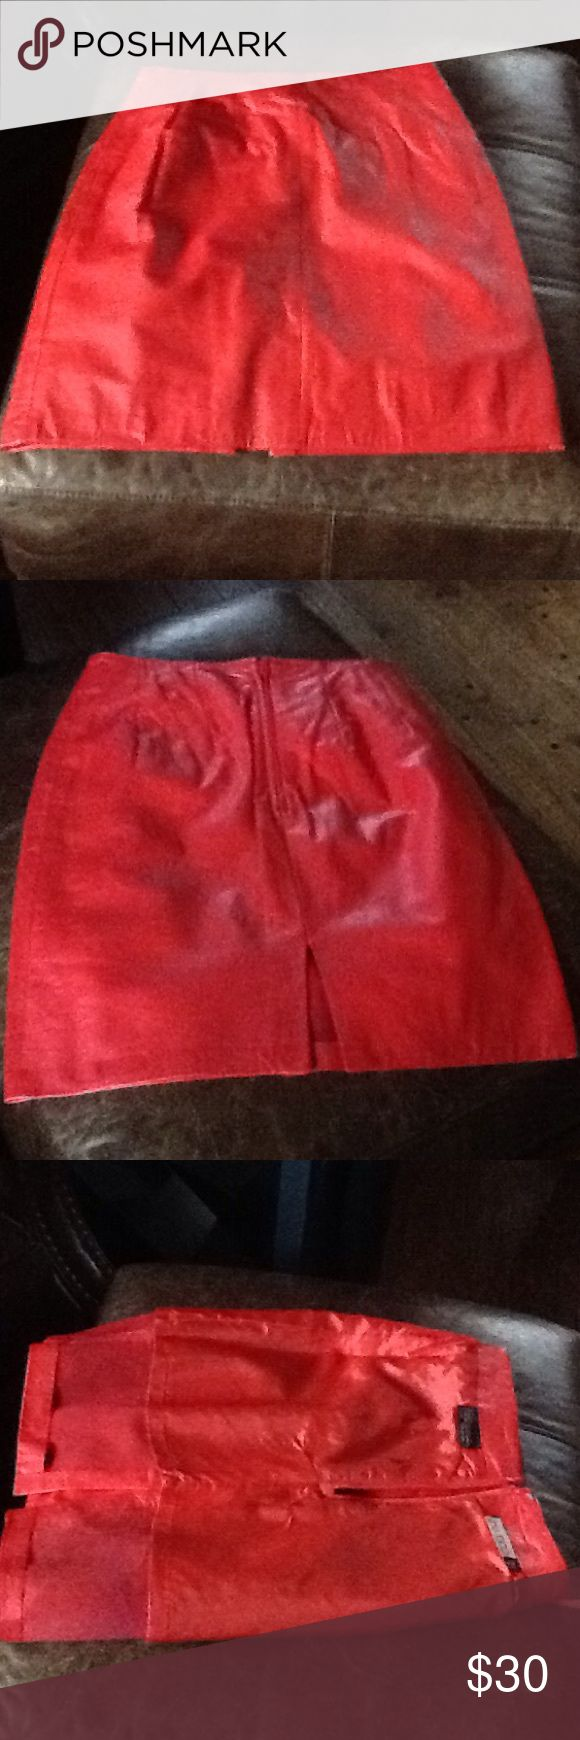 Sz5/6 red leather mini skirt. Worn once VINTAGE! Sz 5/6 red leather mini skirt never worn beautiful vibrant red, with a slit in the back and back mid zipper, too small for me😂 pia rucci Skirts Mini